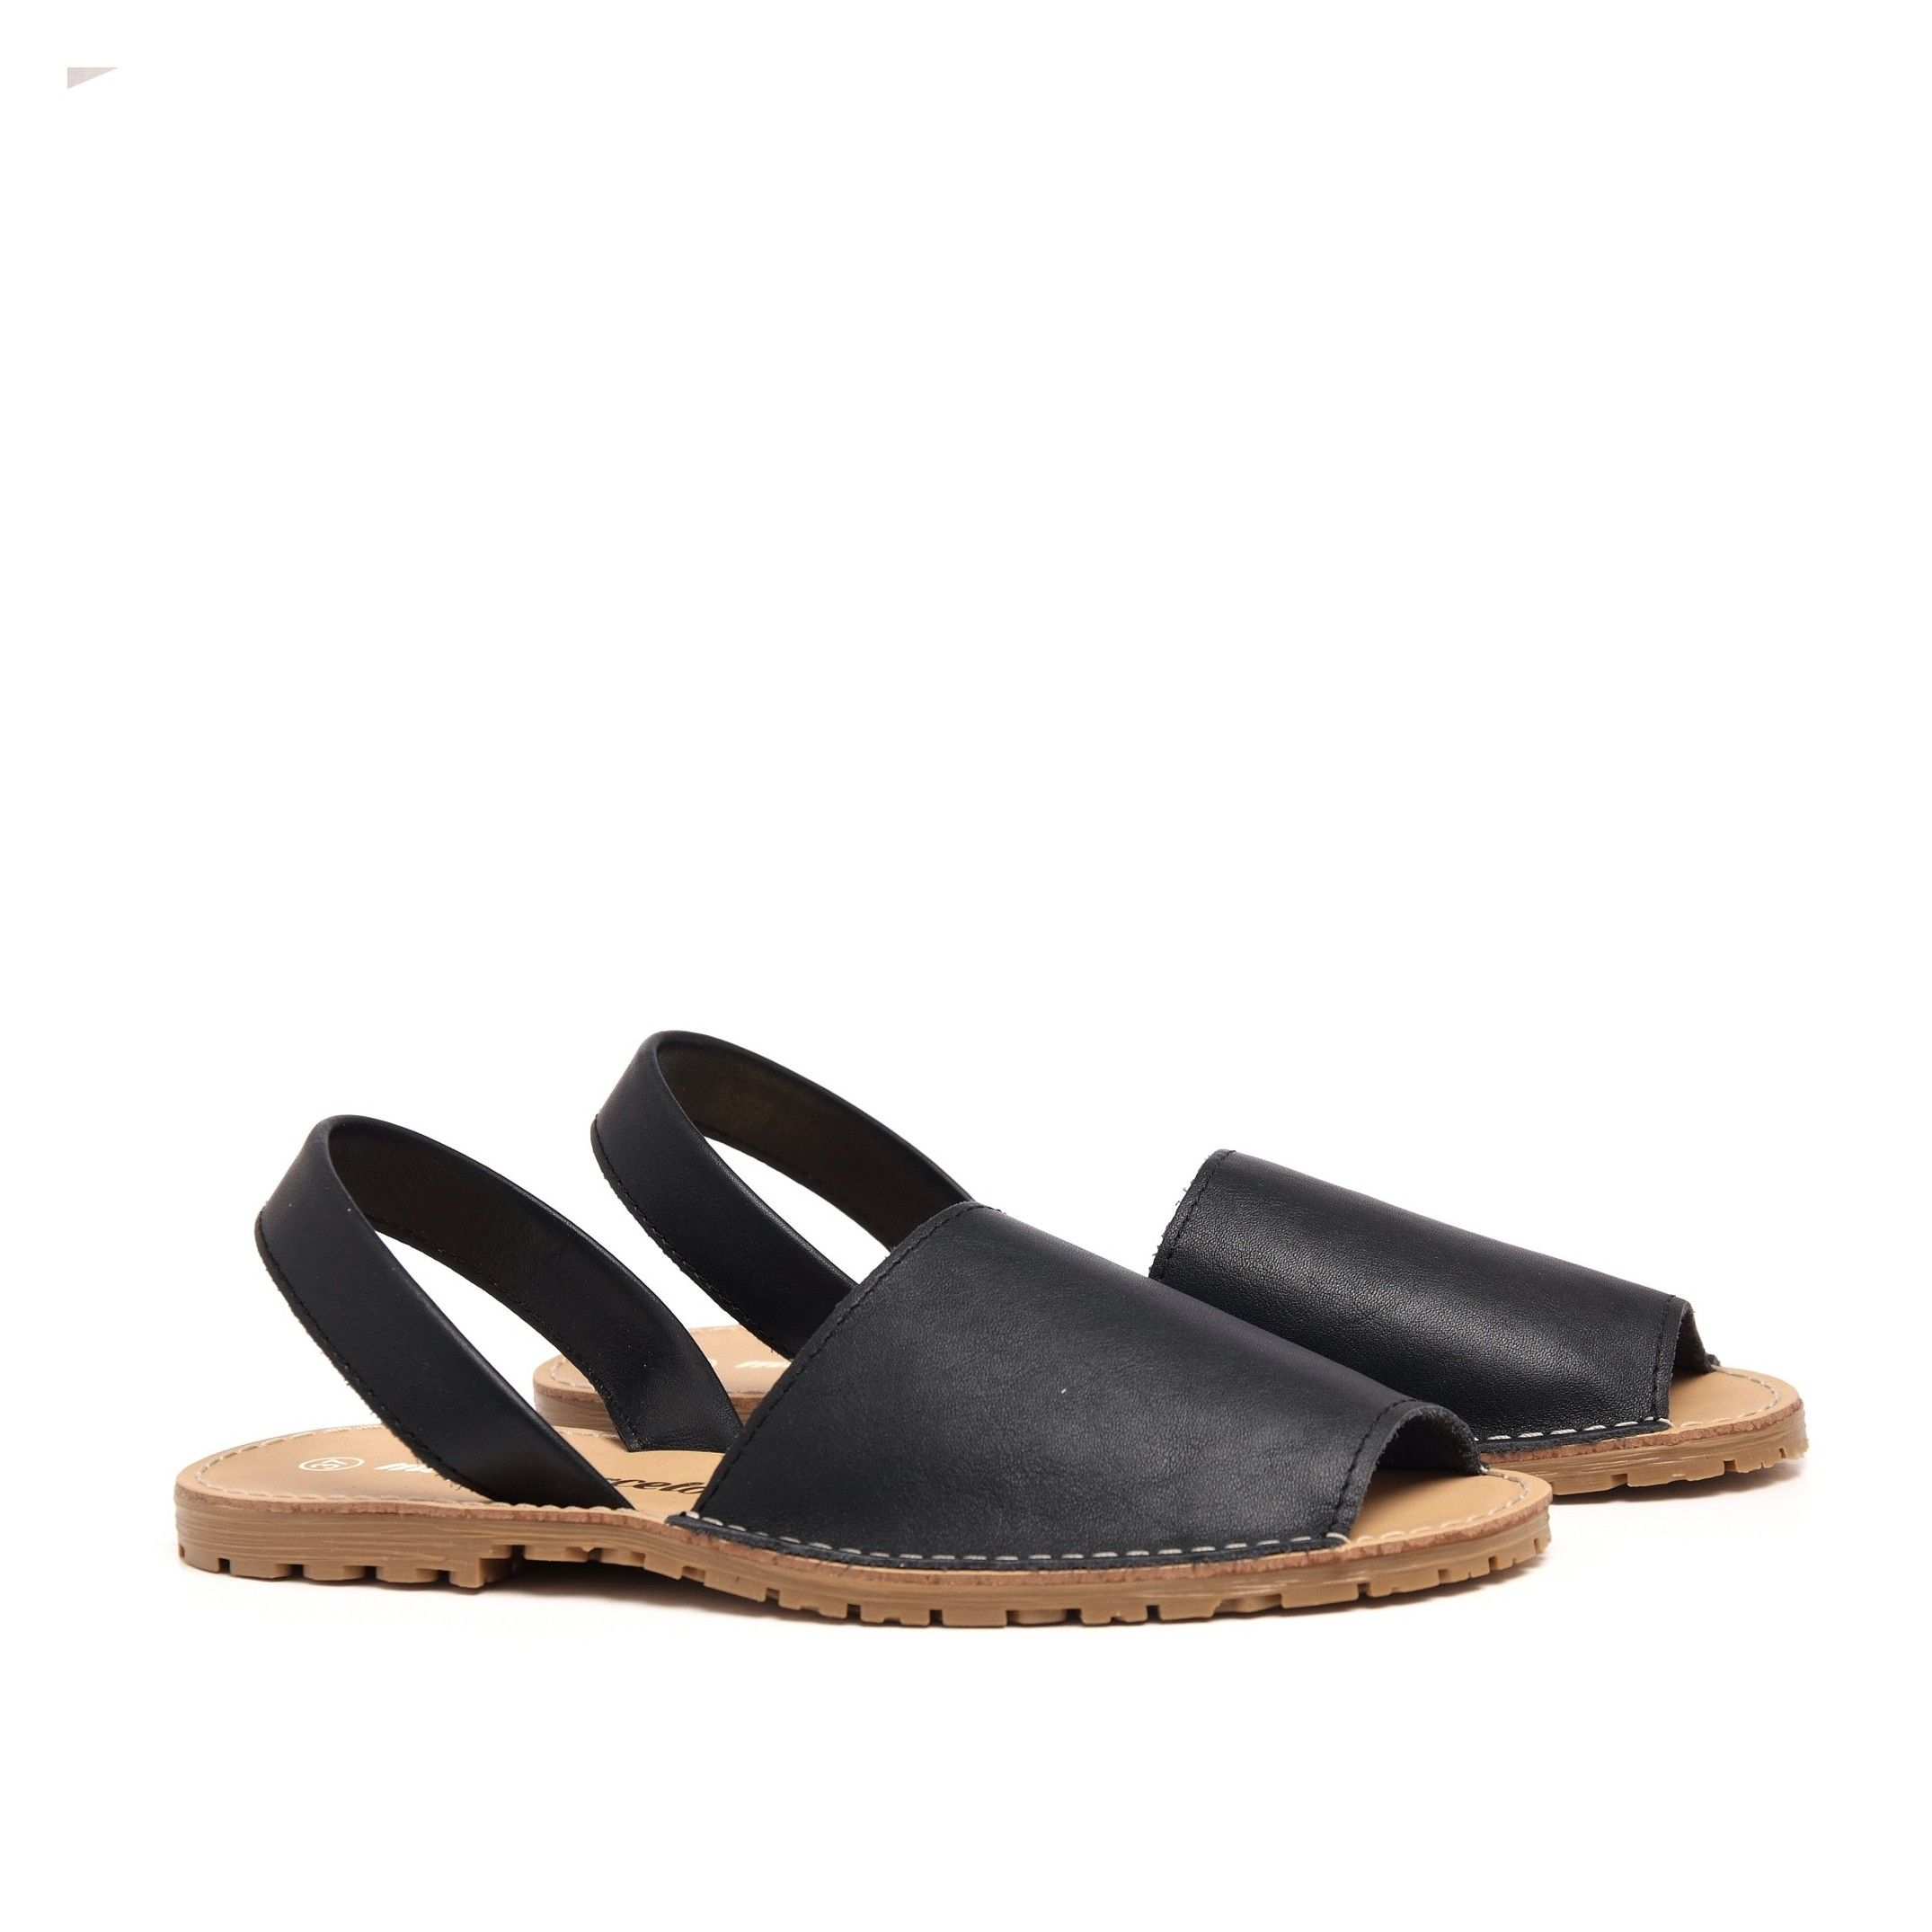 Classic leather sandal Menorquina for Women Navy Blue Shoes. Maria Barcelo